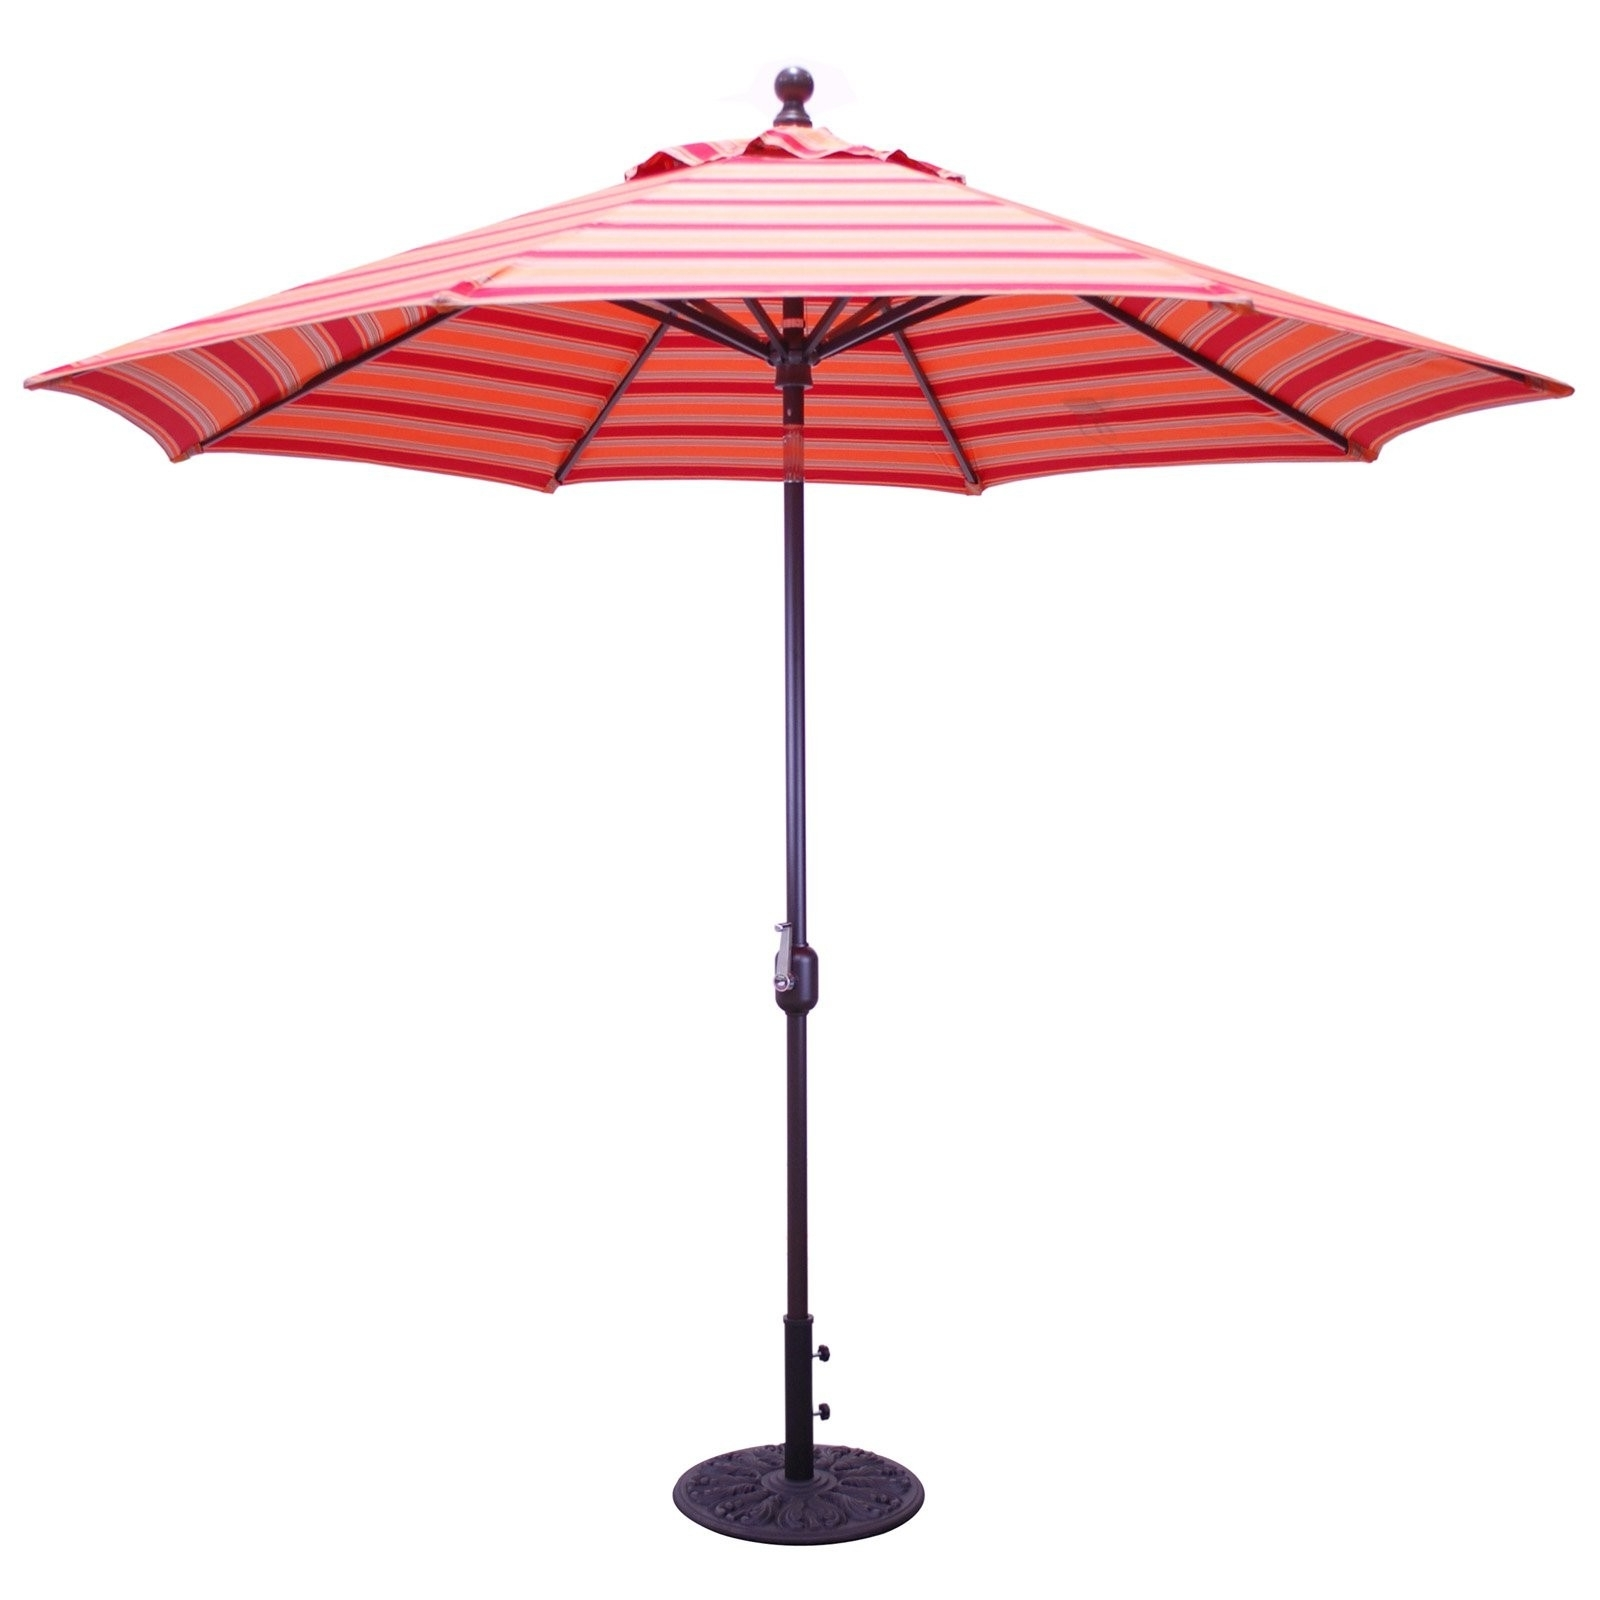 Best And Newest Galtech 9 Ft Sunbrella Aluminum Deluxe Auto Tilt Patio Umbrella With Regard To Sunbrella Patio Table Umbrellas (View 16 of 20)